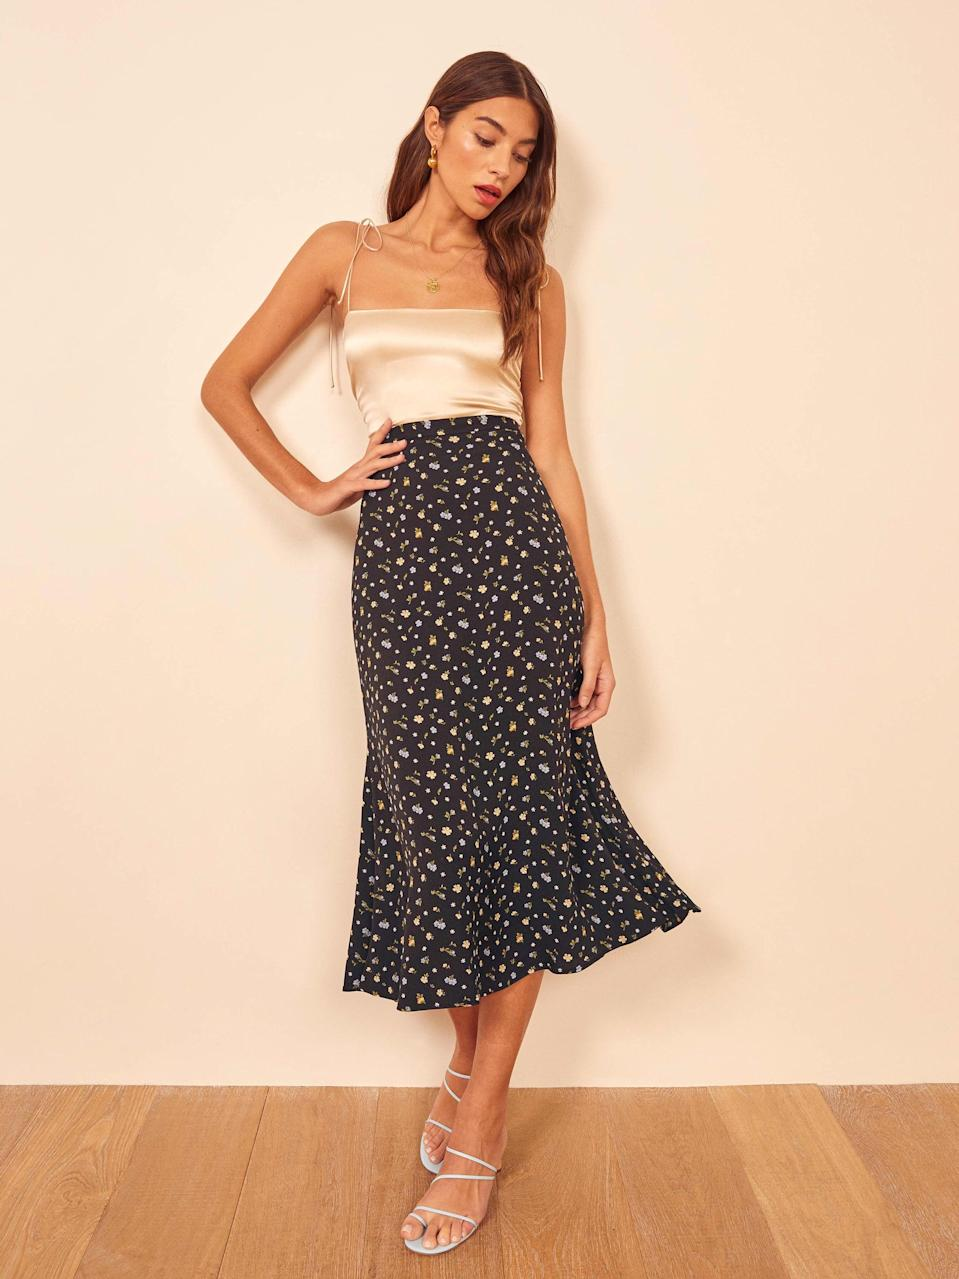 """<p>You'll own this <a href=""""https://www.popsugar.com/buy/Reformation-Bea-Skirt-573317?p_name=Reformation%20Bea%20Skirt&retailer=thereformation.com&pid=573317&price=90&evar1=fab%3Aus&evar9=47465187&evar98=https%3A%2F%2Fwww.popsugar.com%2Ffashion%2Fphoto-gallery%2F47465187%2Fimage%2F47465367%2FReformation-Bea-Skirt&list1=sales%2Csale%20shopping%2Creformation%2Cfashion%20shopping&prop13=api&pdata=1"""" class=""""link rapid-noclick-resp"""" rel=""""nofollow noopener"""" target=""""_blank"""" data-ylk=""""slk:Reformation Bea Skirt"""">Reformation Bea Skirt</a> ($90, originally $128) forever.</p>"""